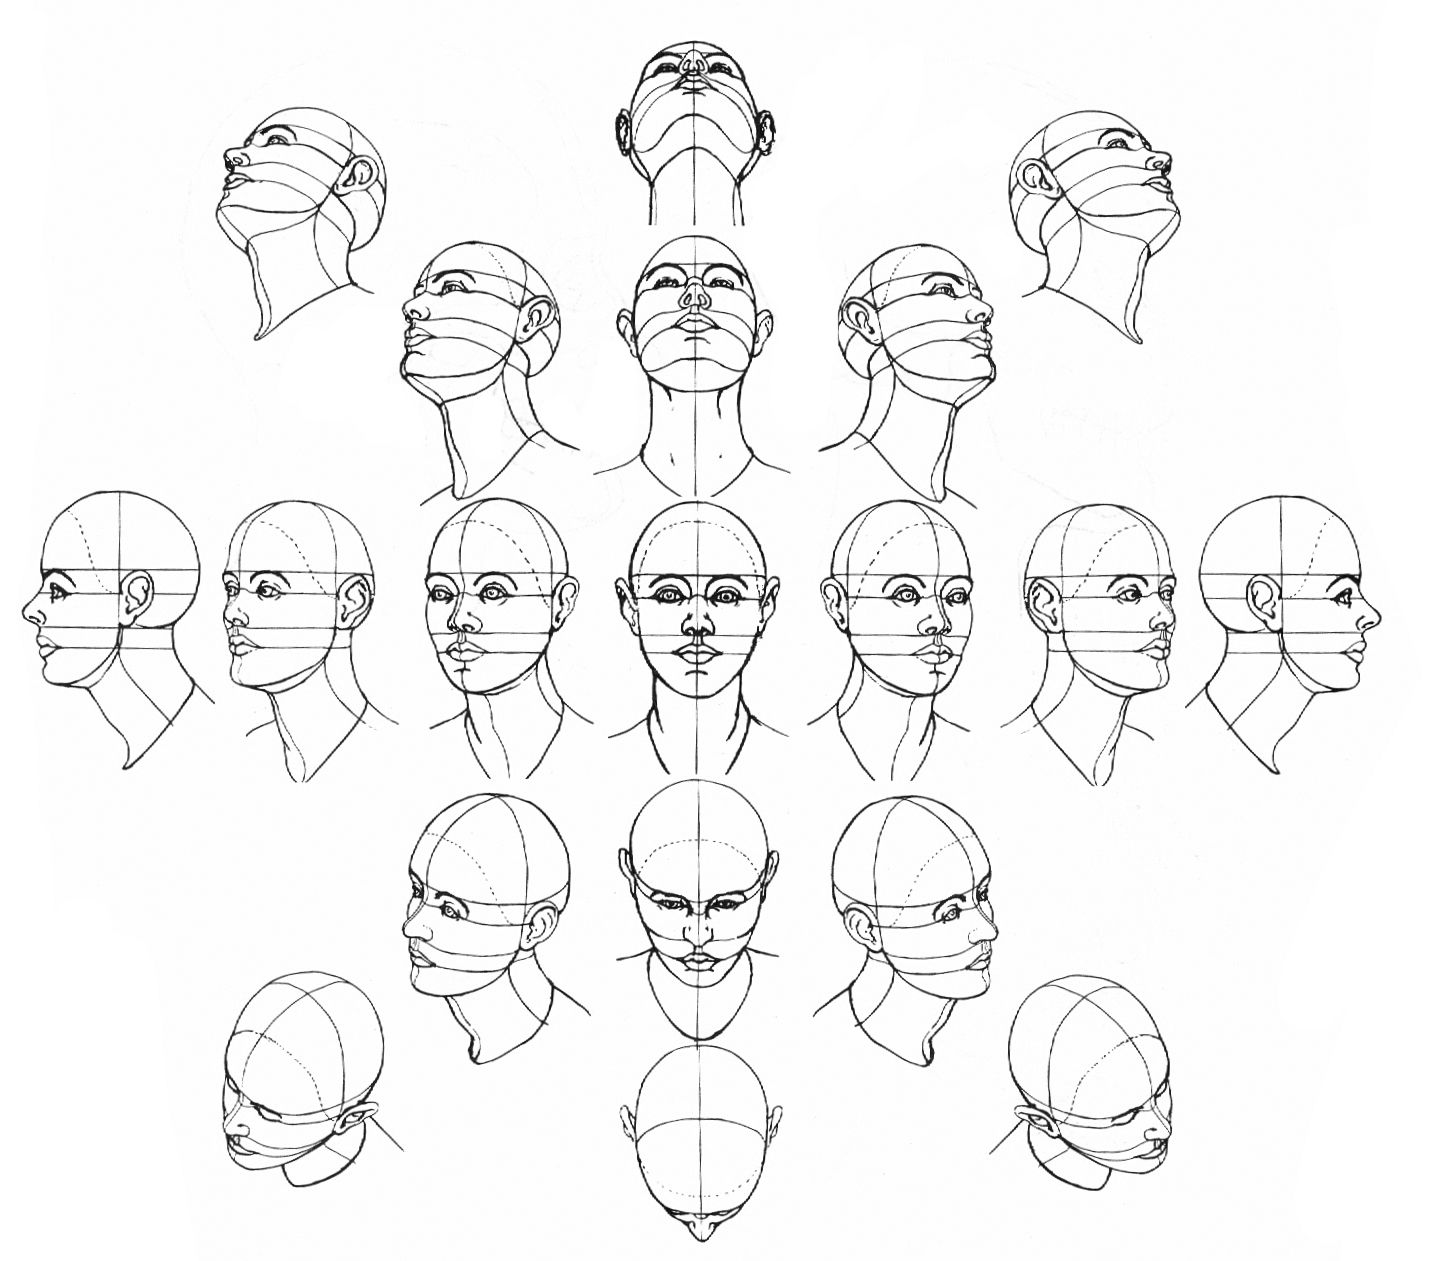 1431x1261 Httpjeffsearle.blogspot.ru201509drawing Head From Different